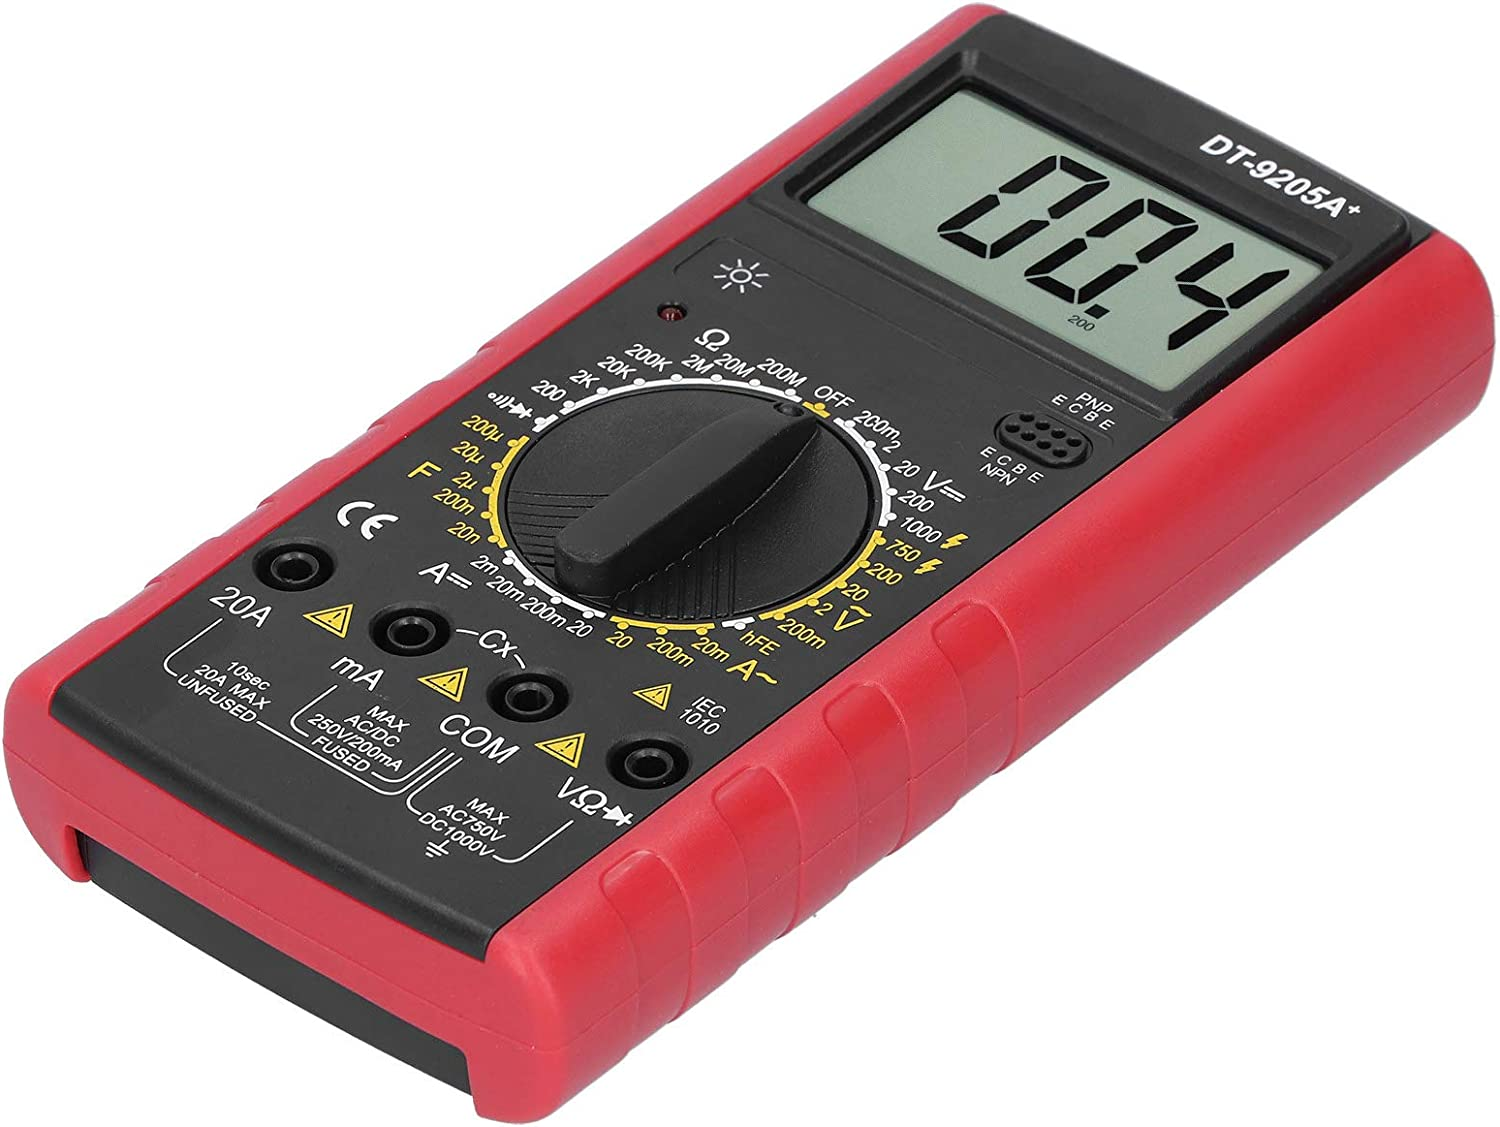 LCD Digital Multimeter Overload Protection DT9205A DC/AC Voltage Current ABS Frequency Tester for Families